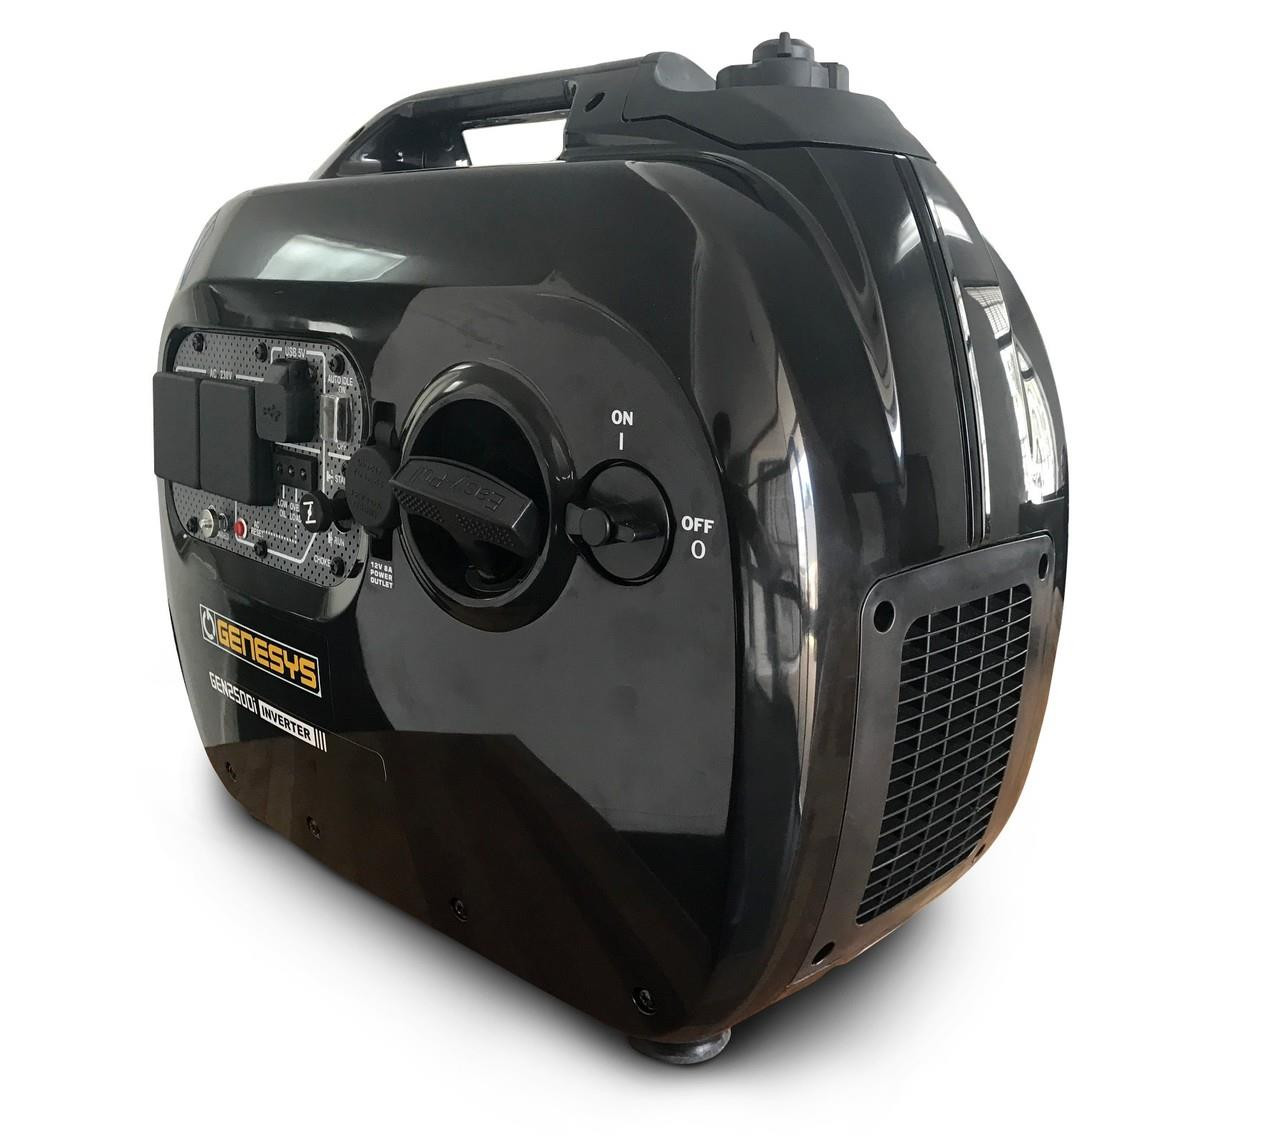 2.4KVA Inverter Generator for Camping, Boating or Home Use